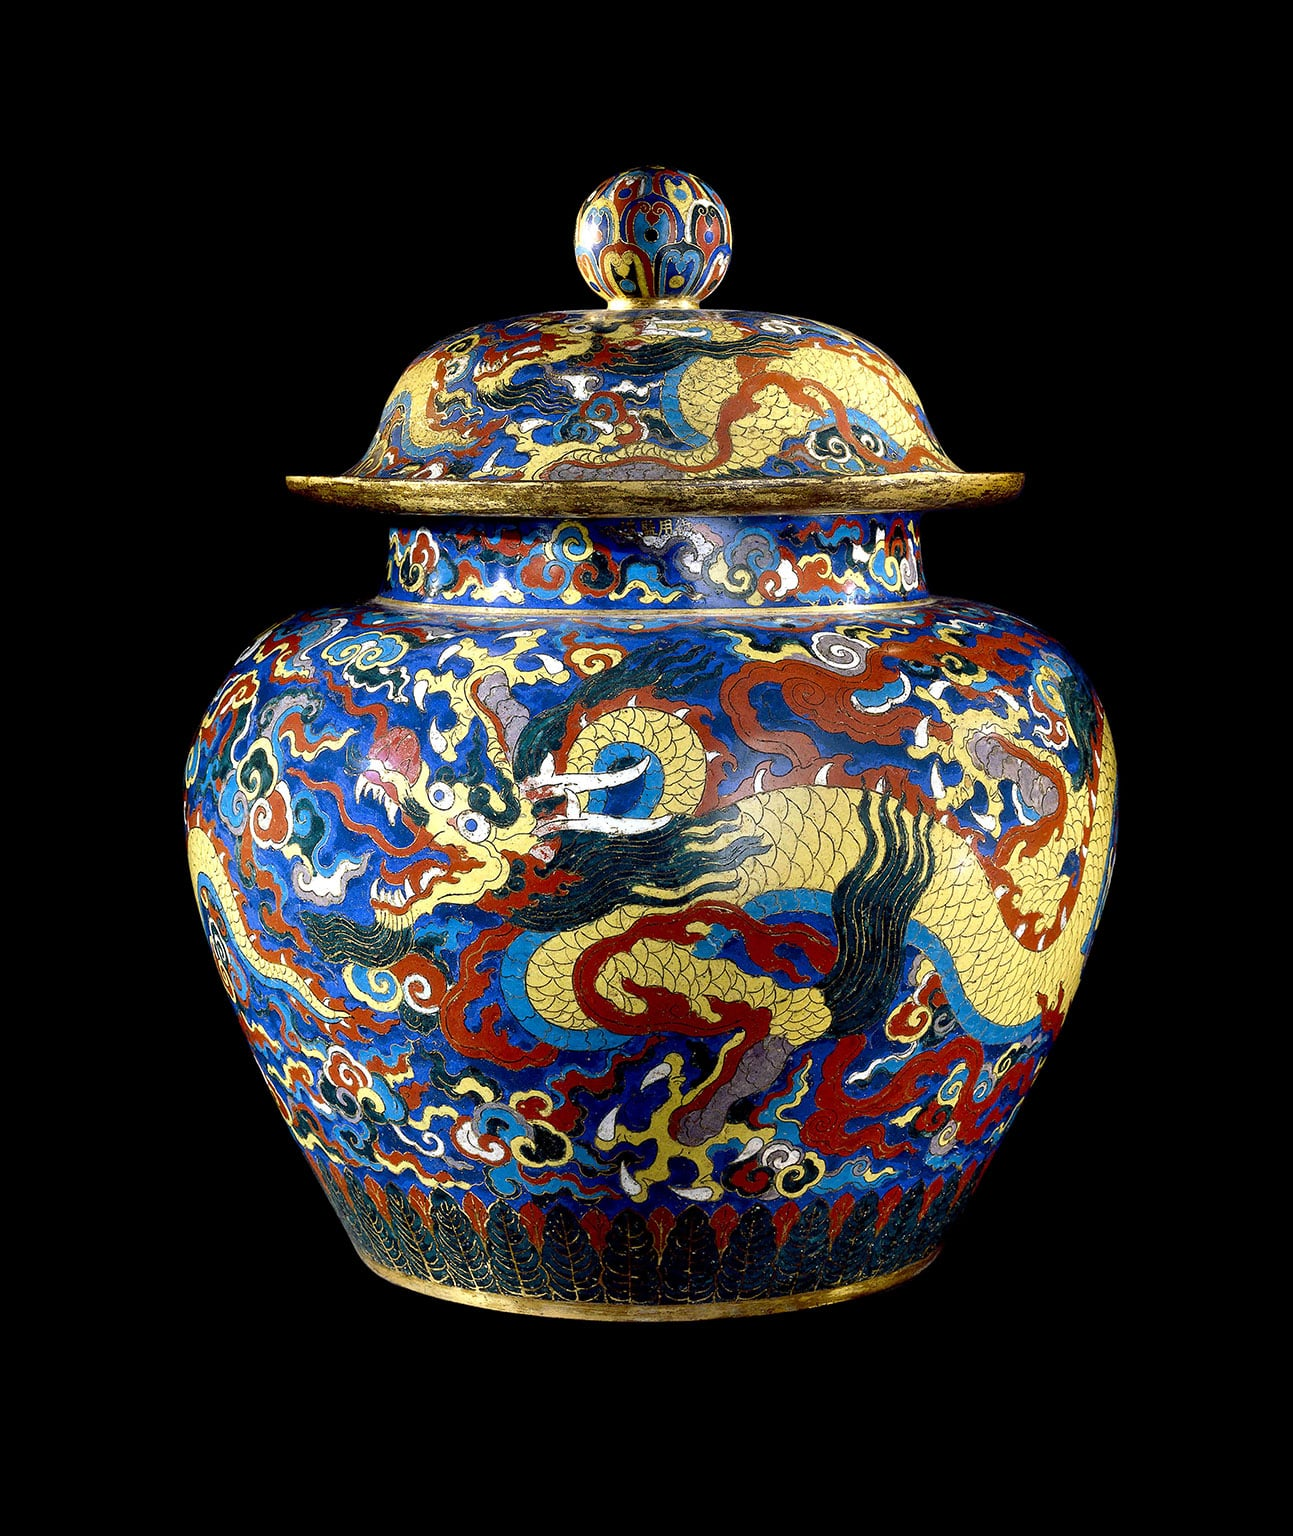 Cloisonné enamel jar and cover with dragons, Xuande mark and period (1426-1435), Beijing